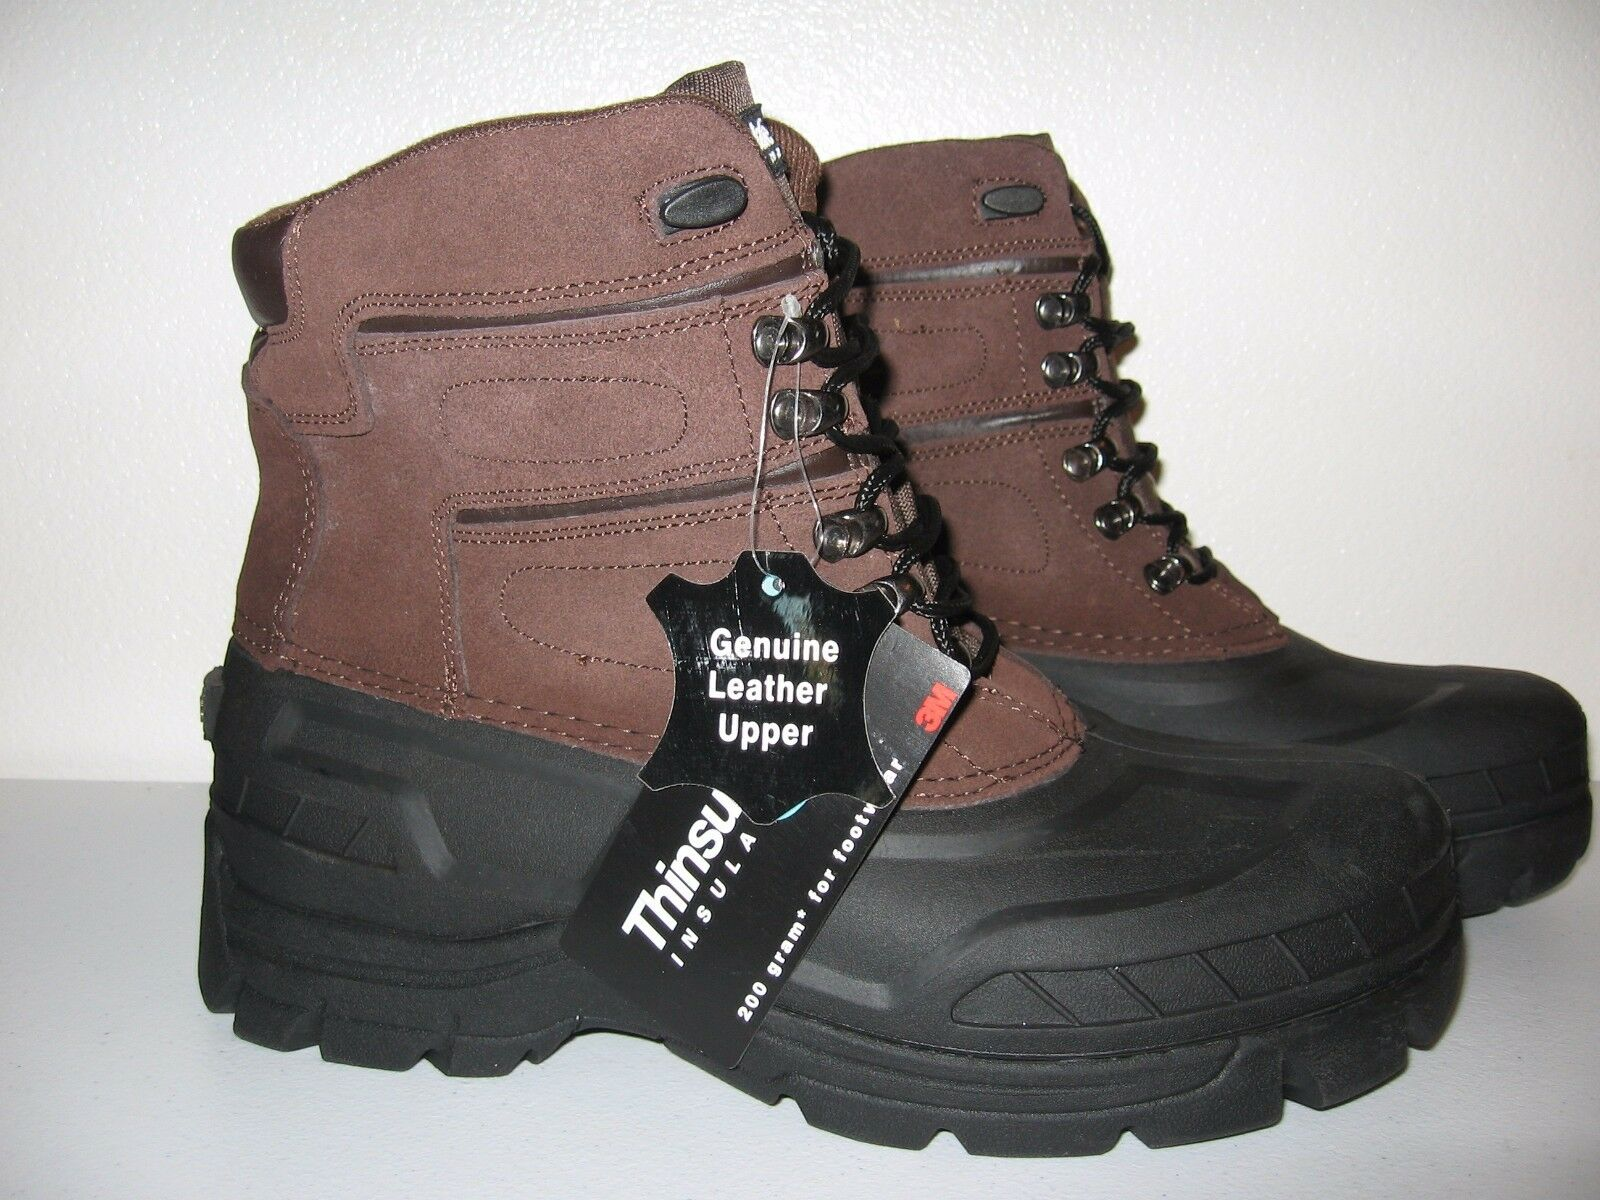 MENS ELKWOOD ICICLE THINSULATE BROWN SIZE 11 BOOTS NEW IN BOX